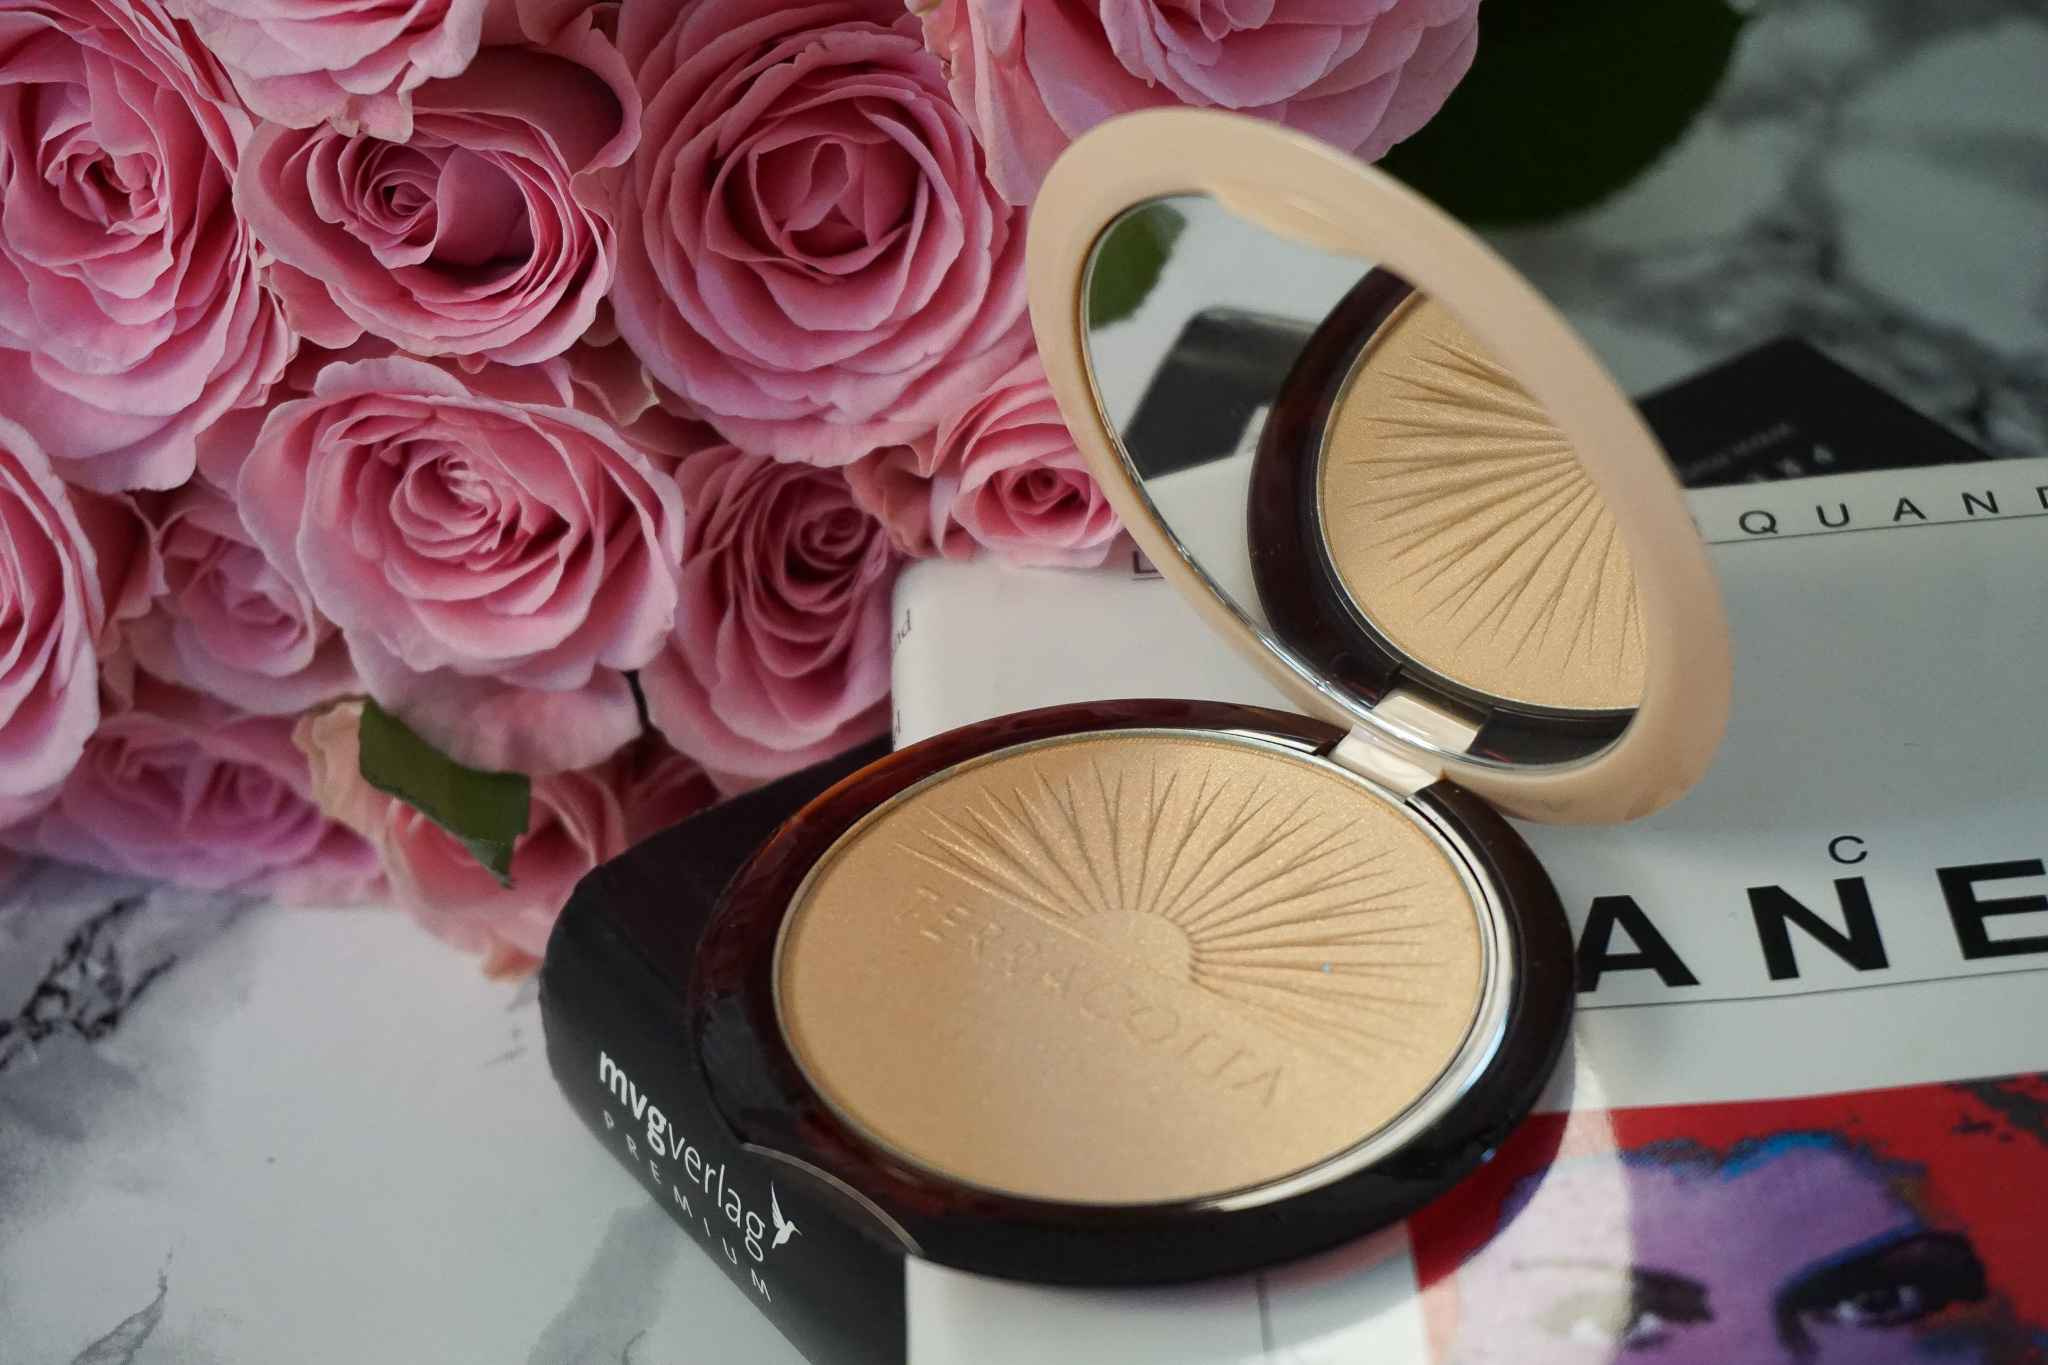 guerlain Terracotta Summer Highlight Bronzing Powder makeup review